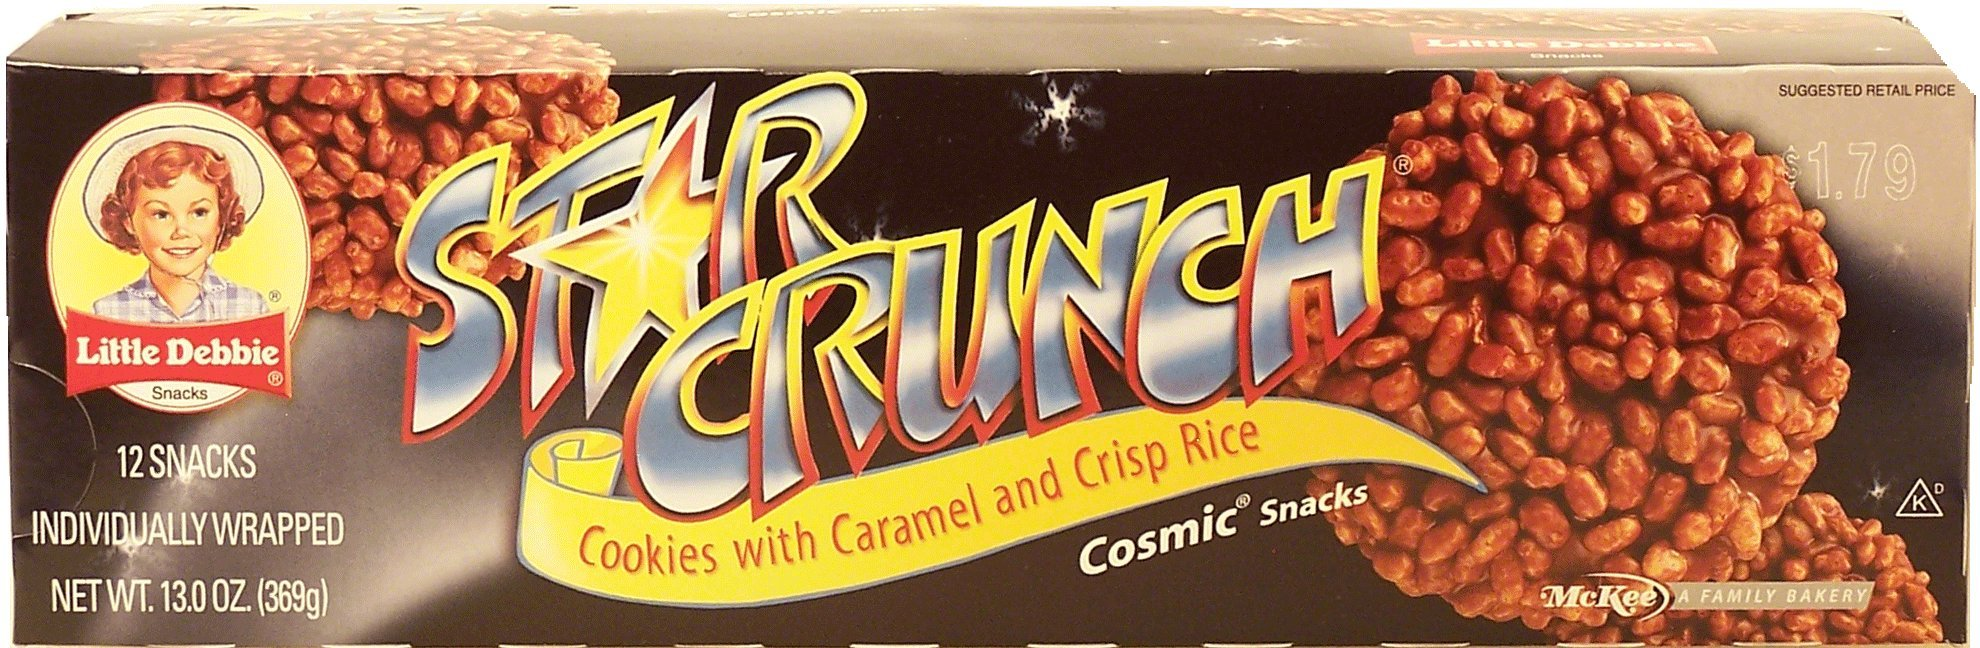 Little Debbie Snacks Star Crunch, 12-Count Box (CASE of 16 boxes)